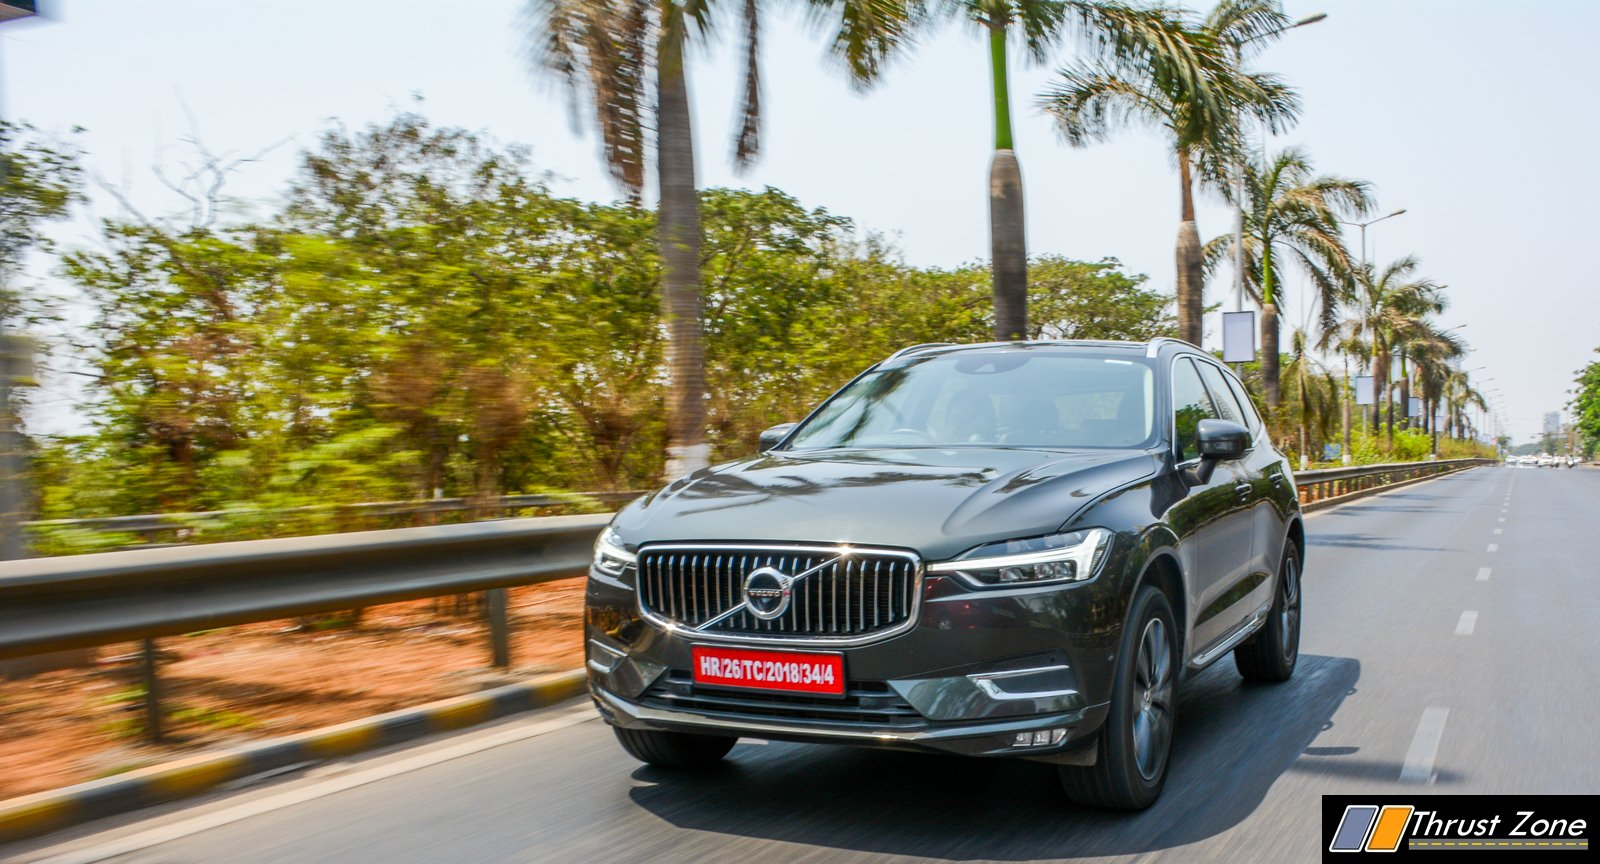 https://www.thrustzone.com/wp-content/uploads/2019/06/2019-Volvo-XC60-Diesel-Review-road-test-2.jpg